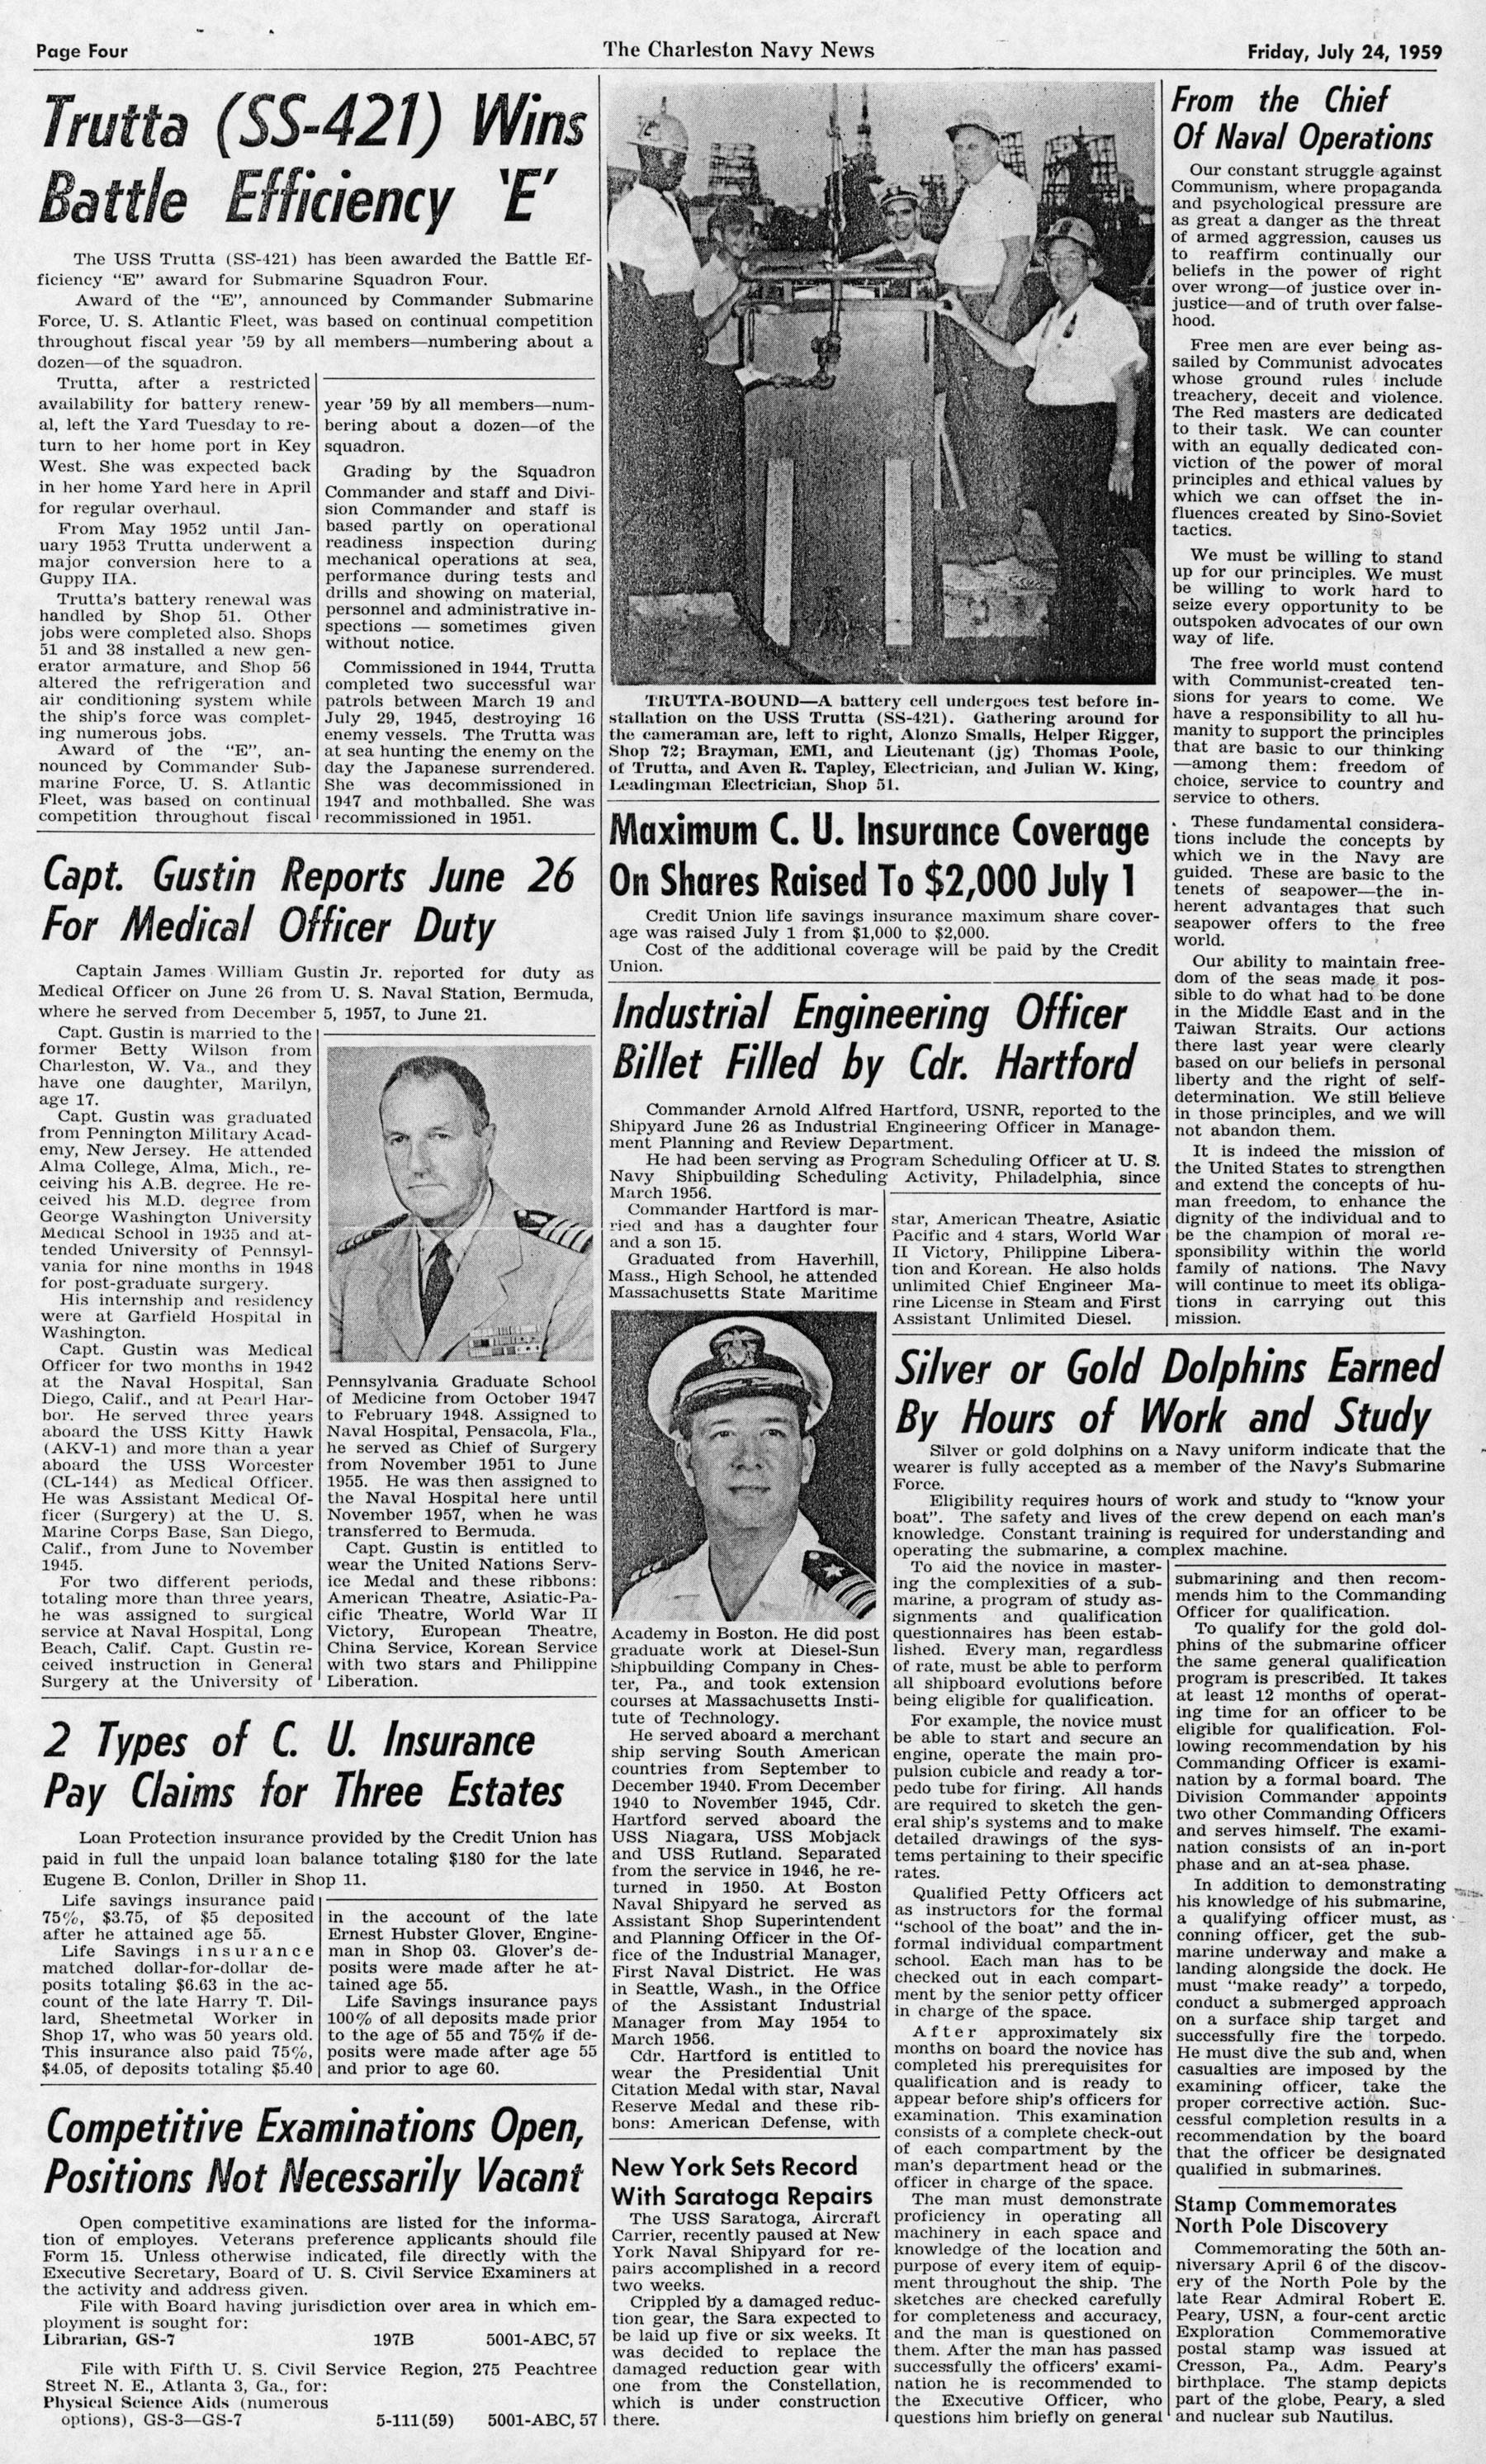 The Charleston Navy News, Volume 18, Edition 1, page iv